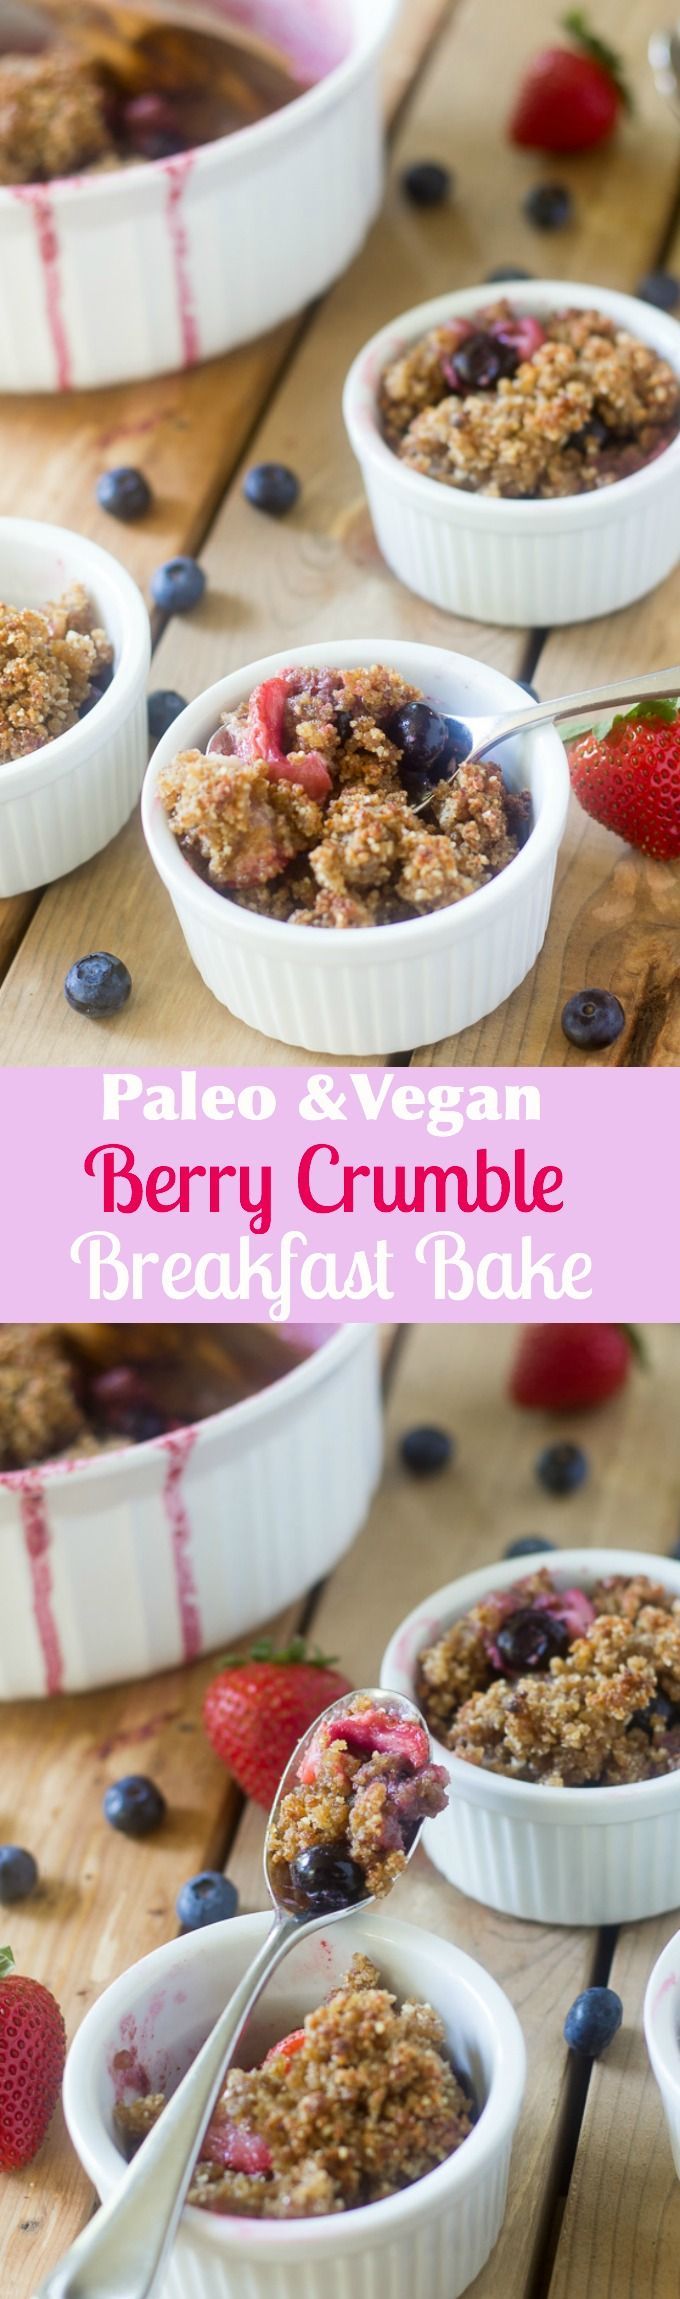 Paleo & Vegan Berry crumble breakfast bake with loads of fresh sweet berries, no refined sugar and a toasty crispy topping! Great for breakfast or a healthy dessert